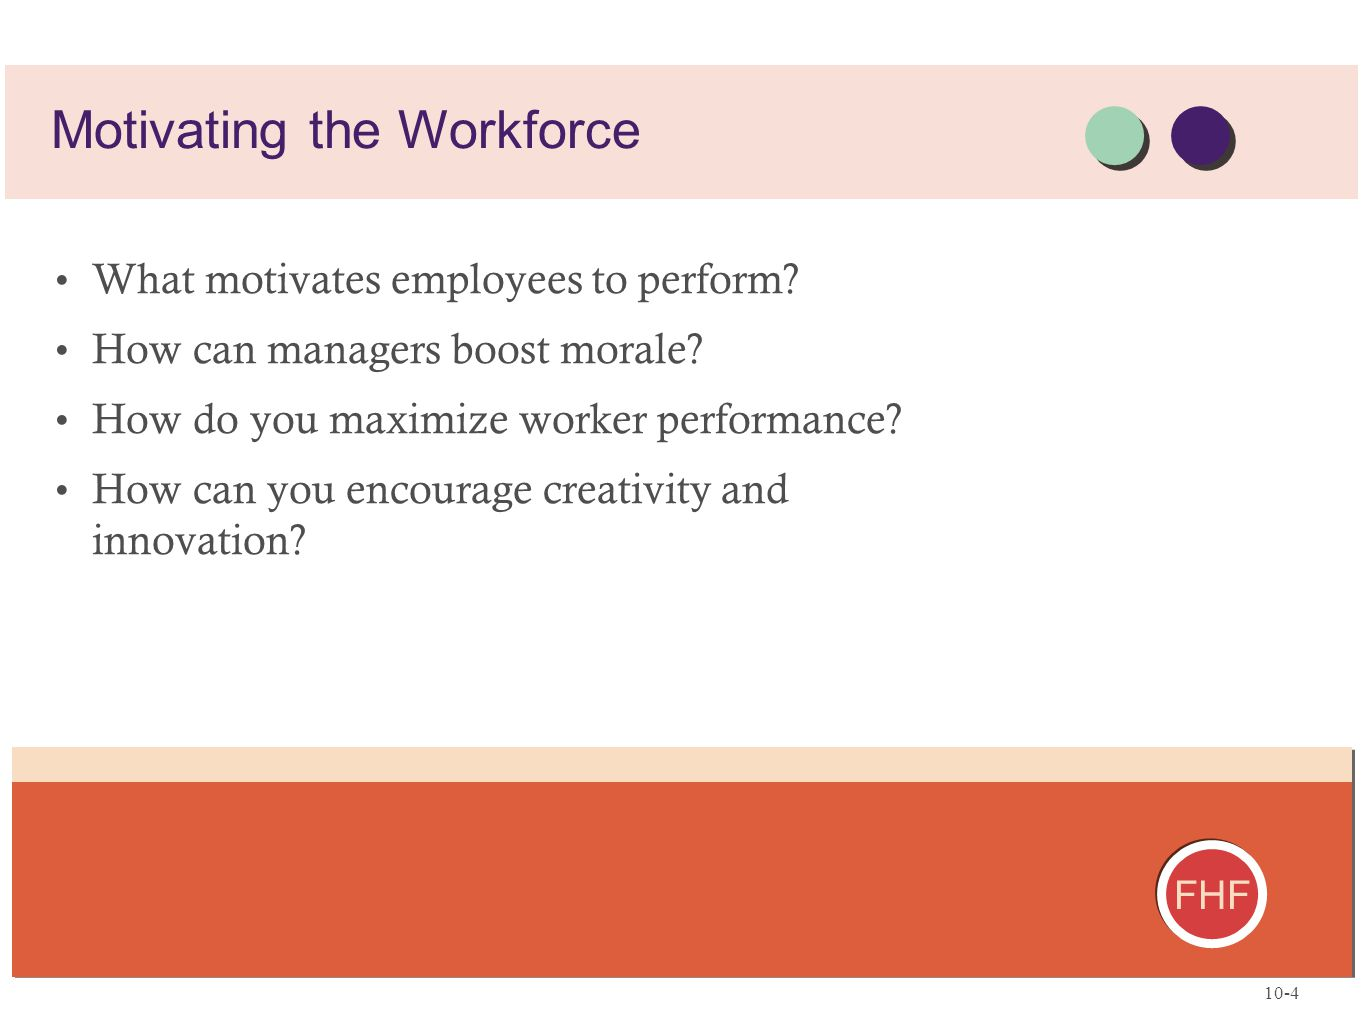 FHF What motivates employees to perform? How can managers boost morale? How do you maximize worker performance? How can you encourage creativity and i